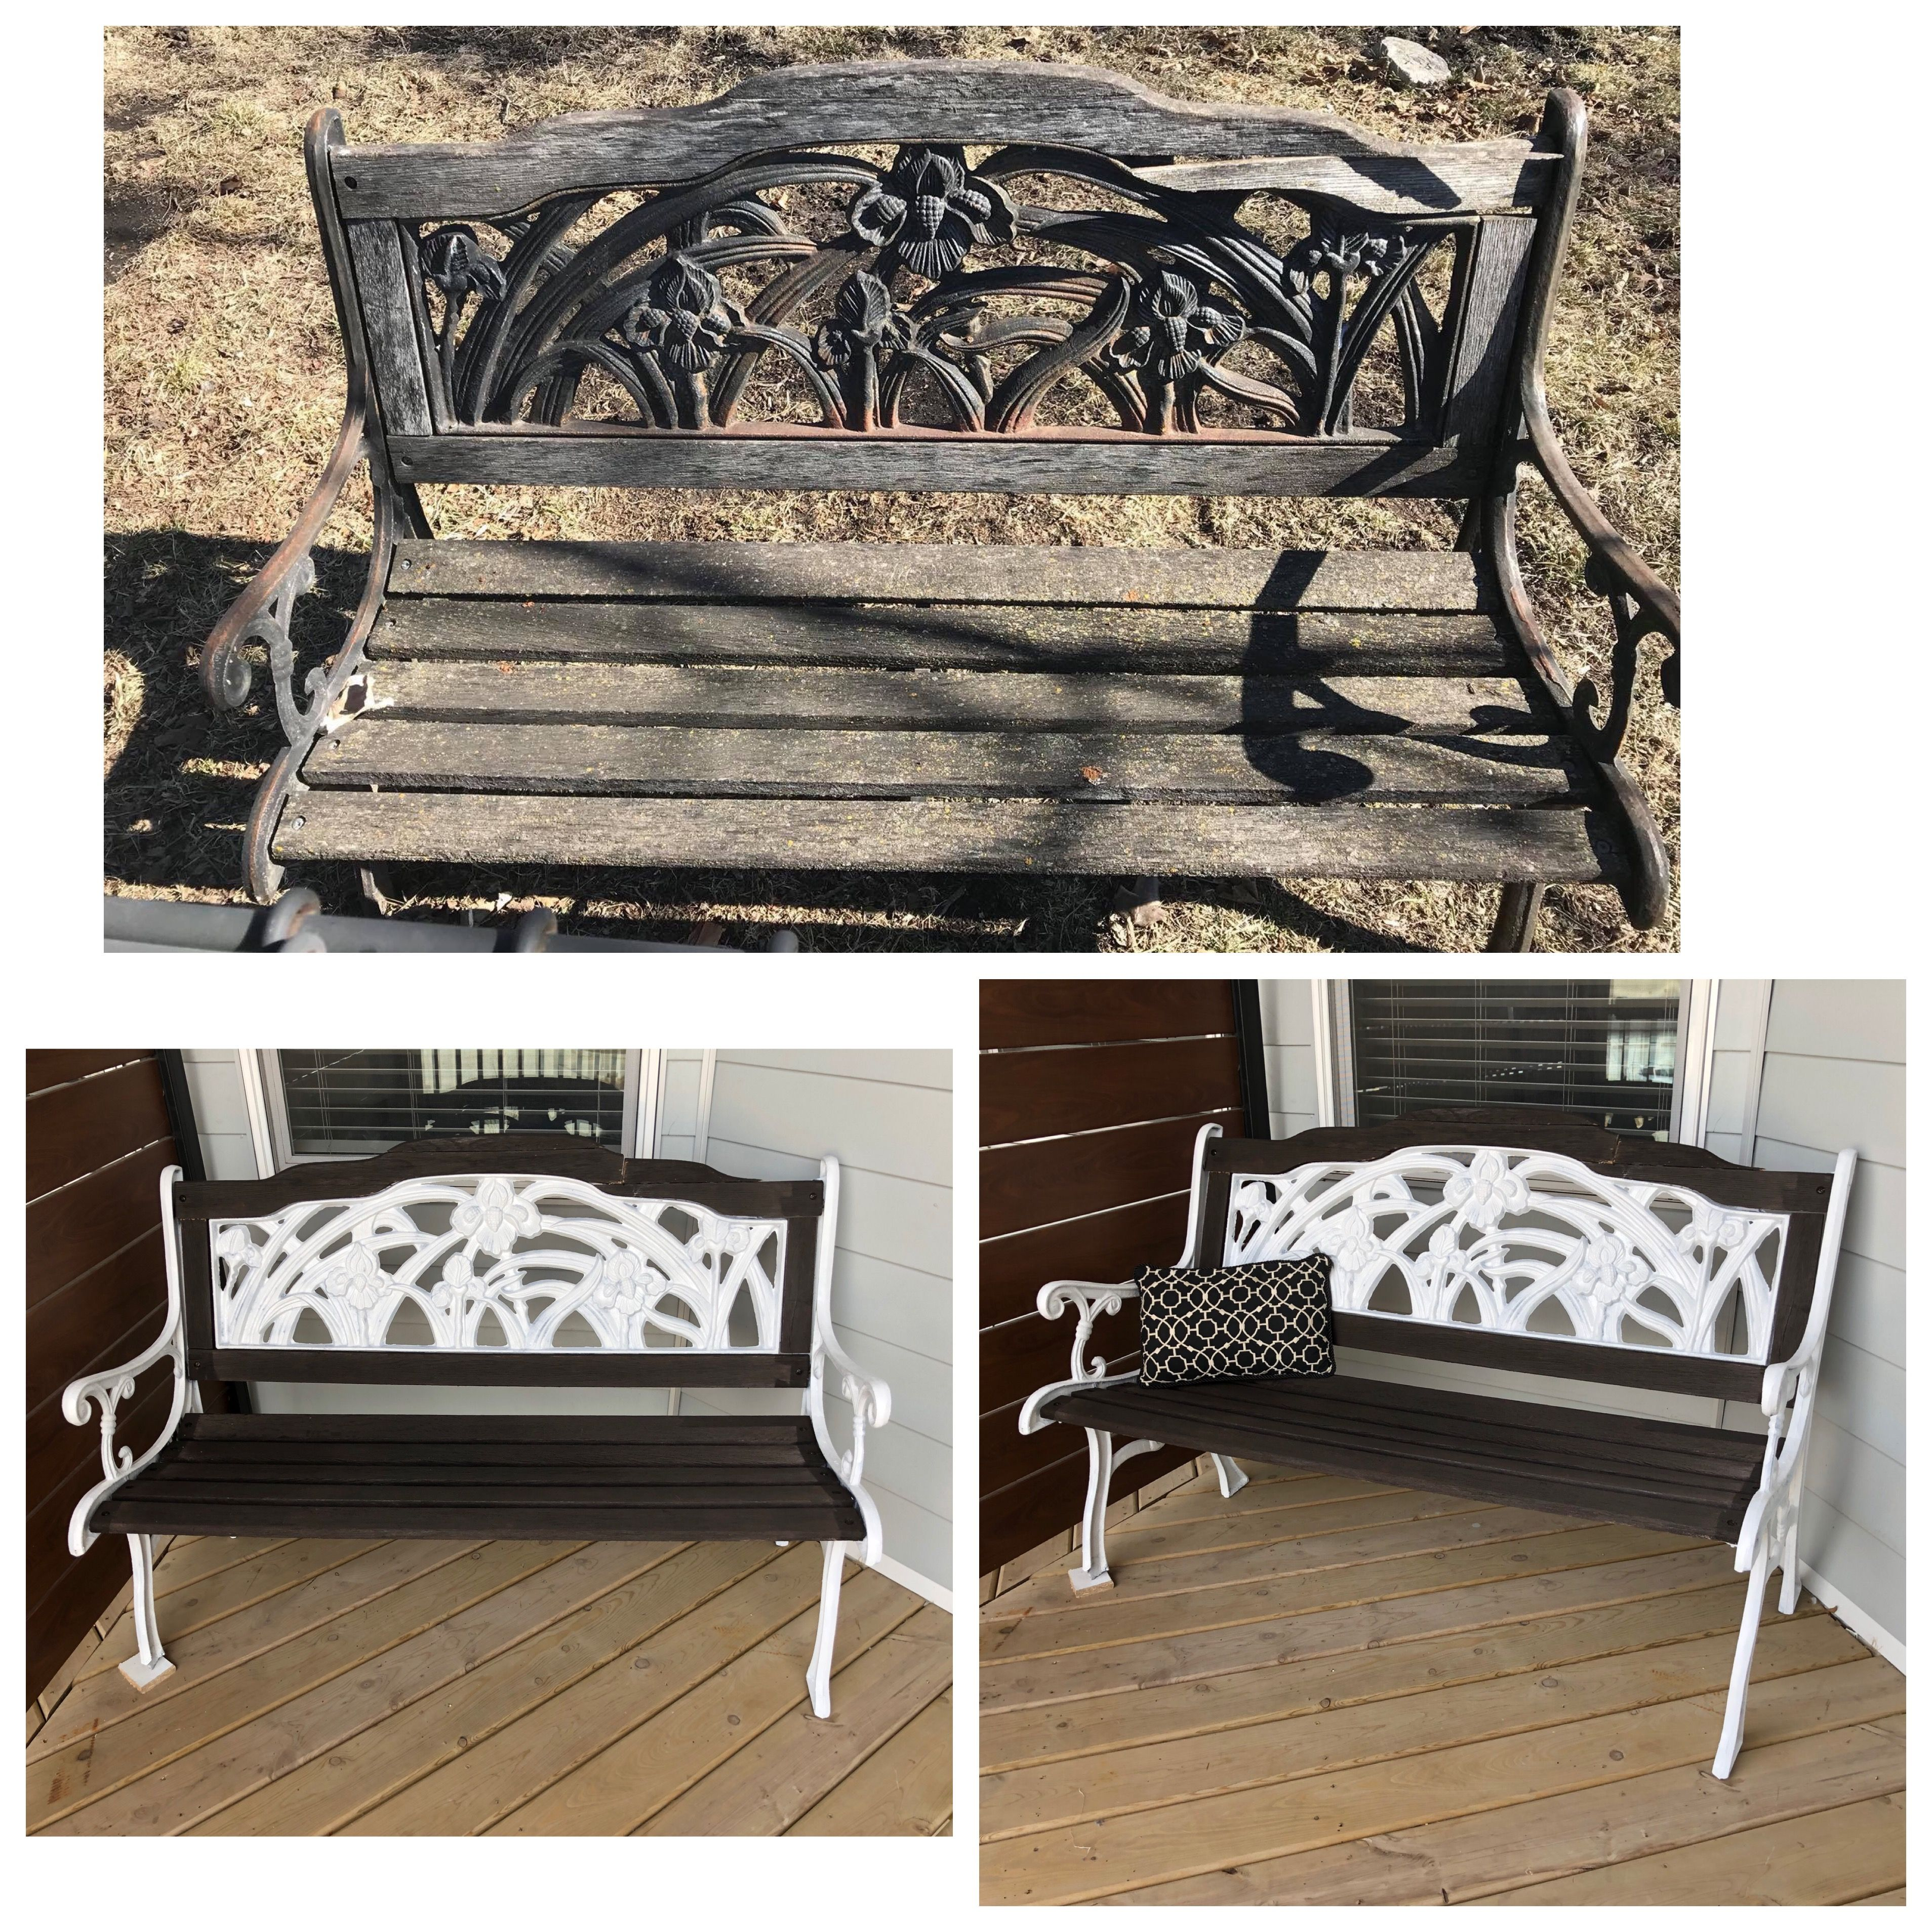 Phenomenal Before And After Of Old Iron Bench Used A Dark Stain On Pdpeps Interior Chair Design Pdpepsorg